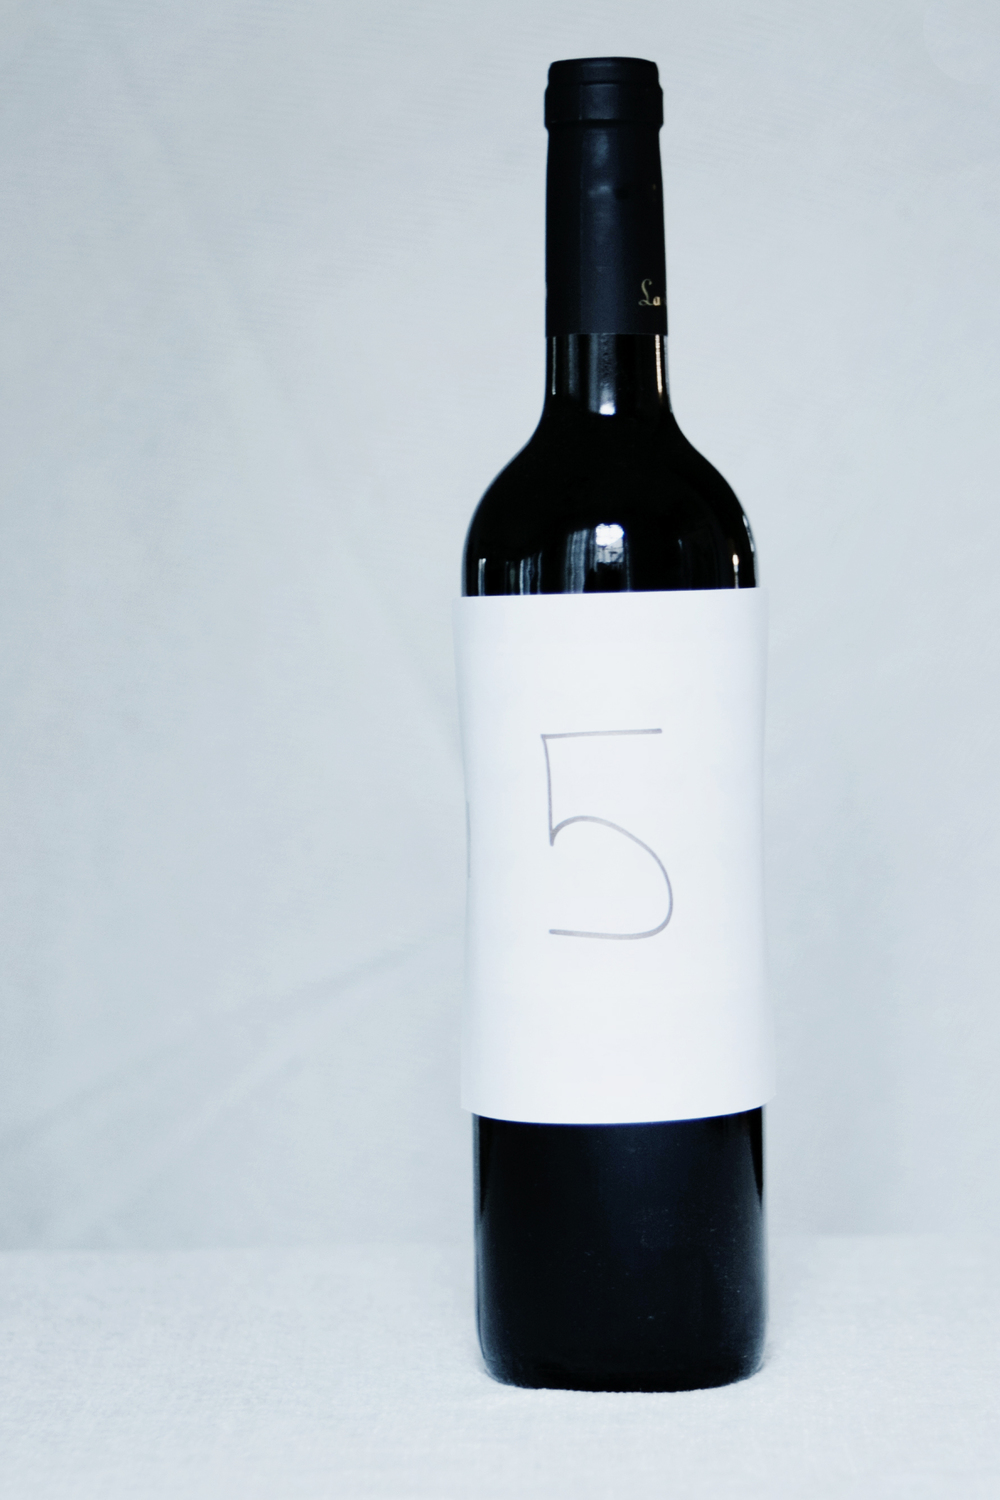 How to Find the Perfect Bottle of Wine under $20